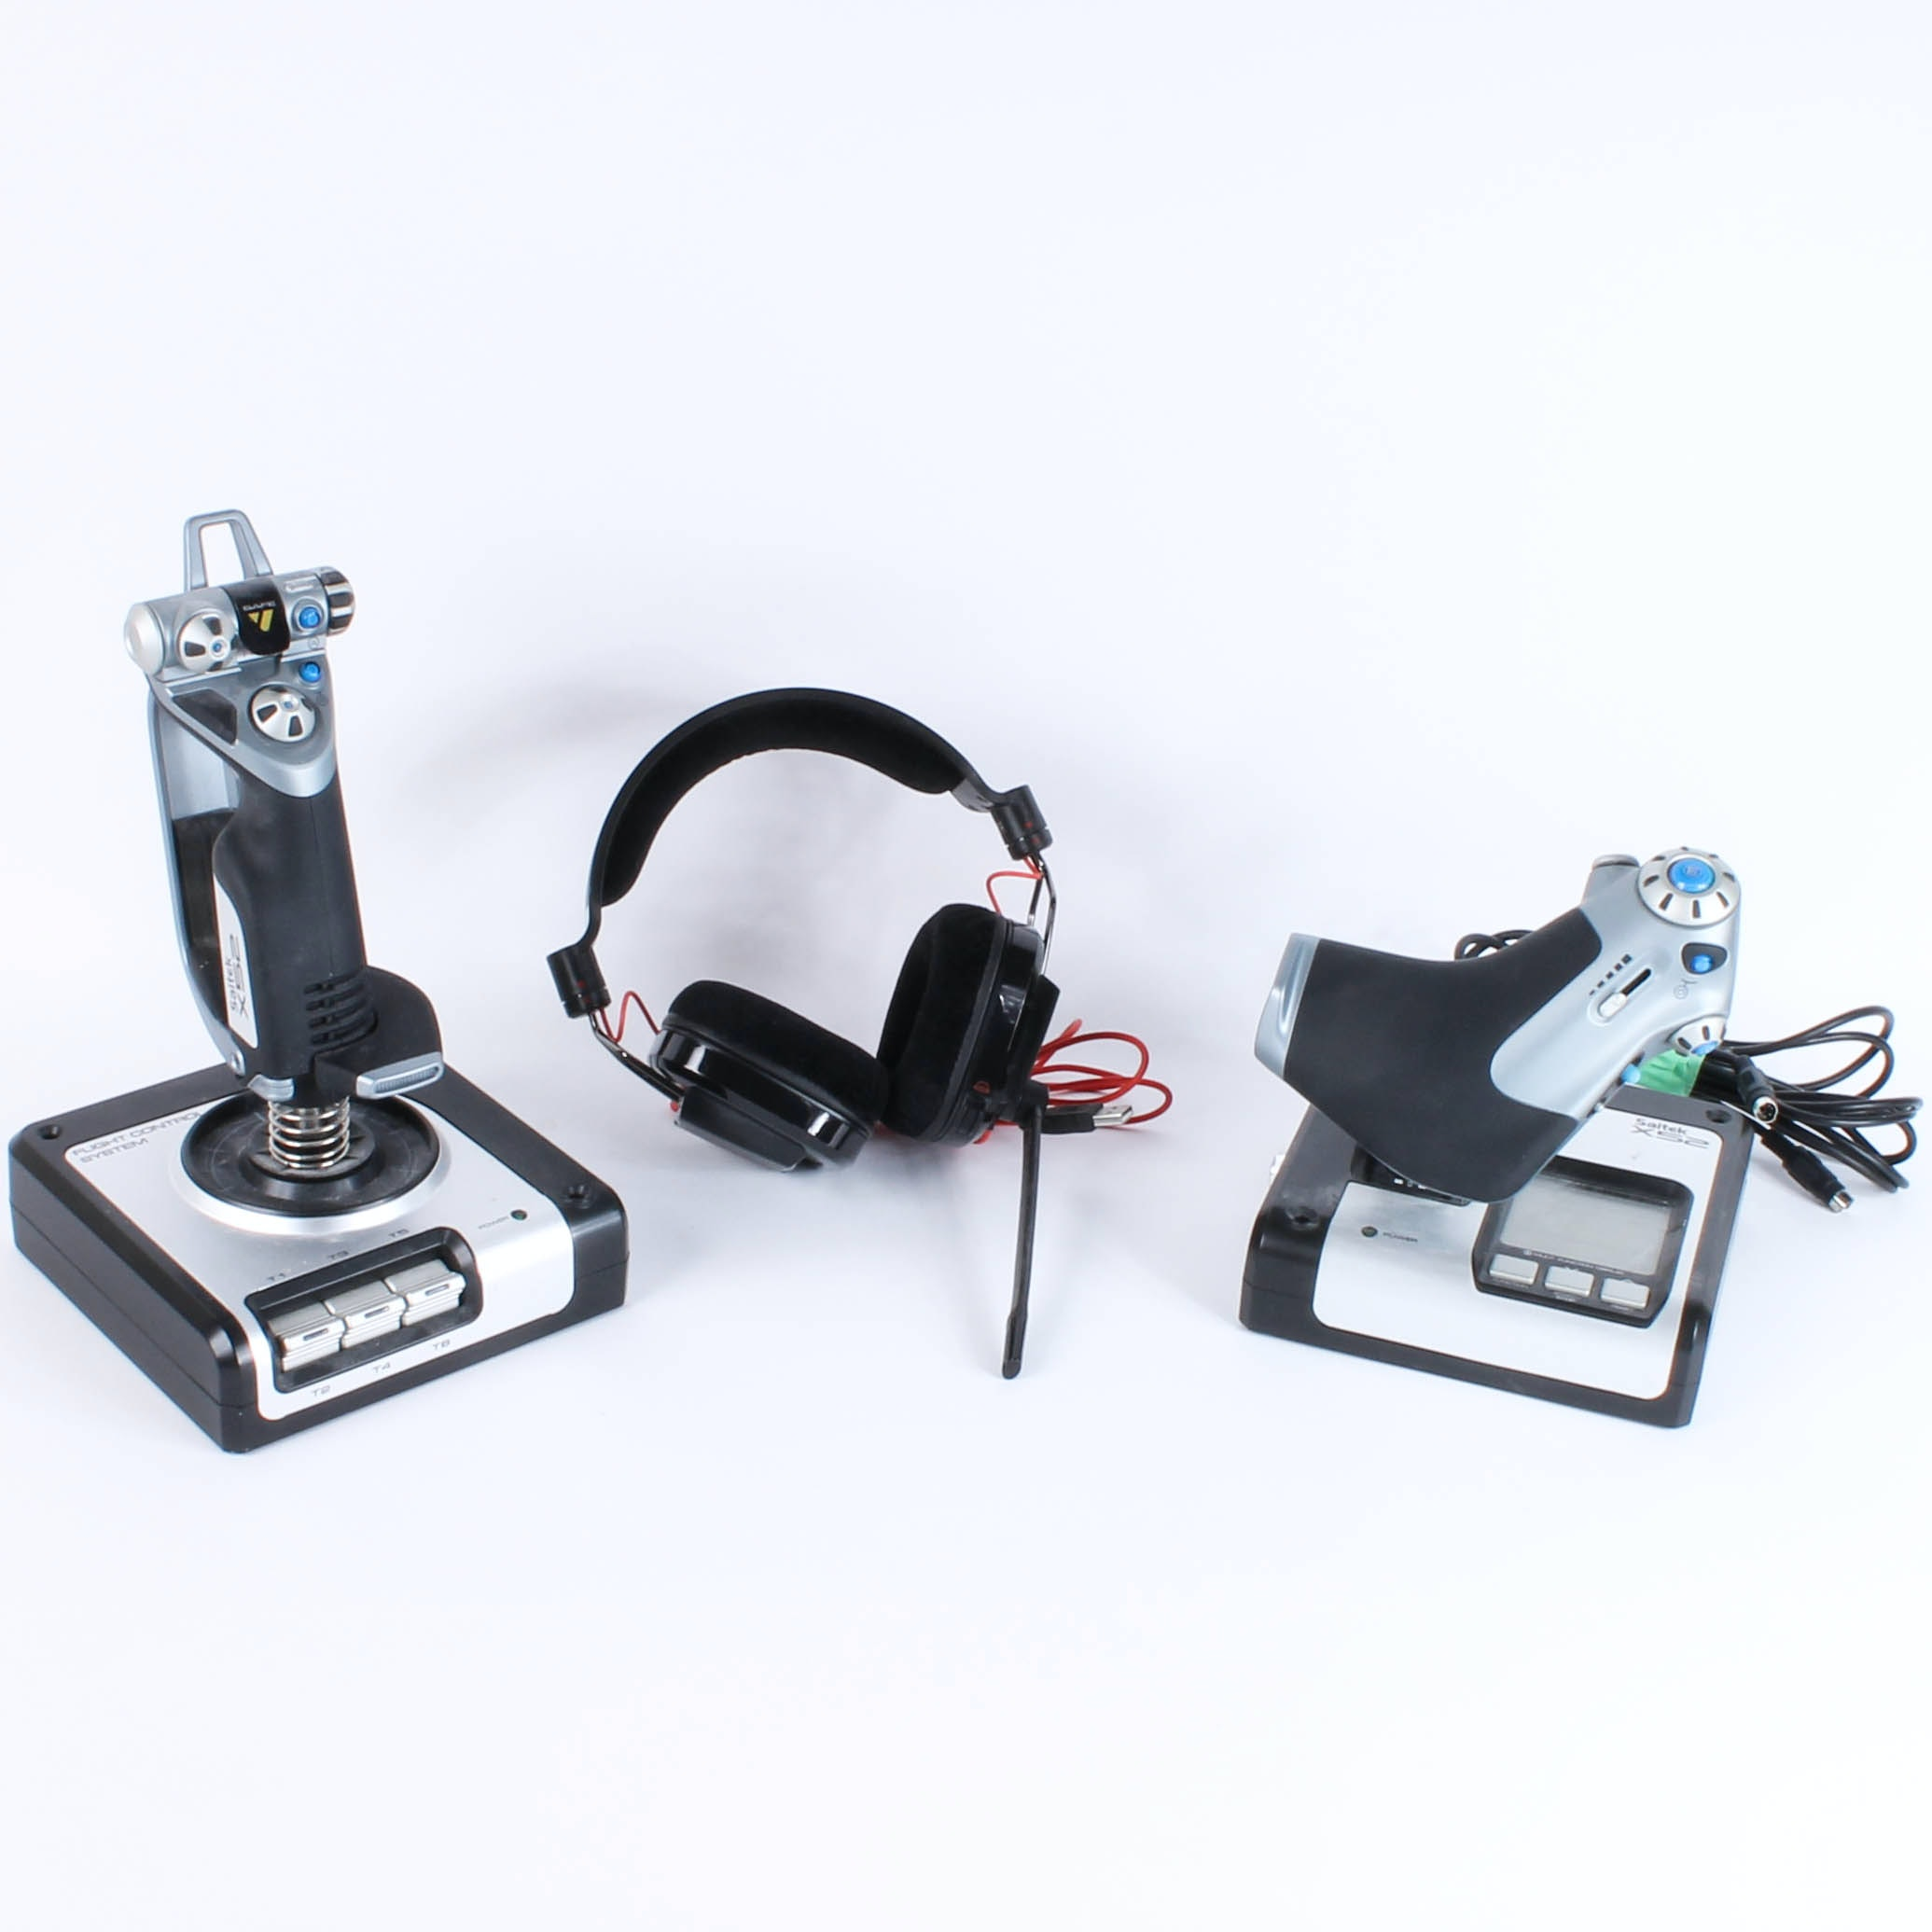 Gamecom and Other Computer Gaming Accessories